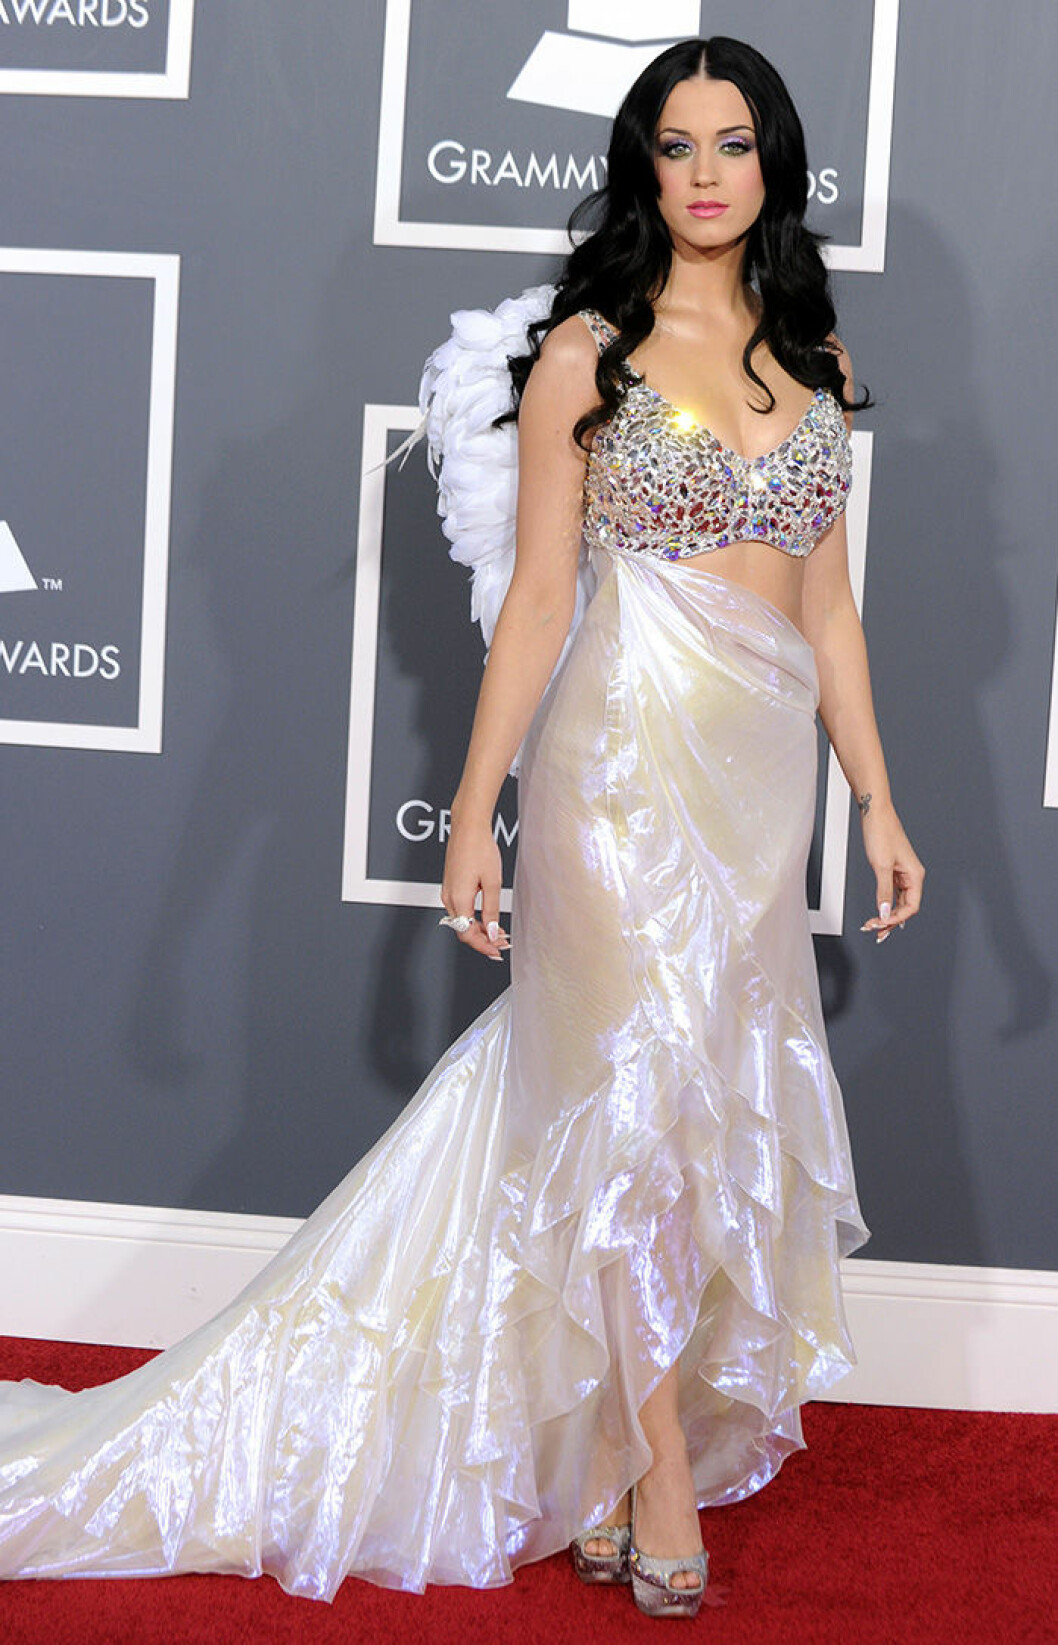 En bild på sångerskan Katy Perry på Grammy Awards 2011.